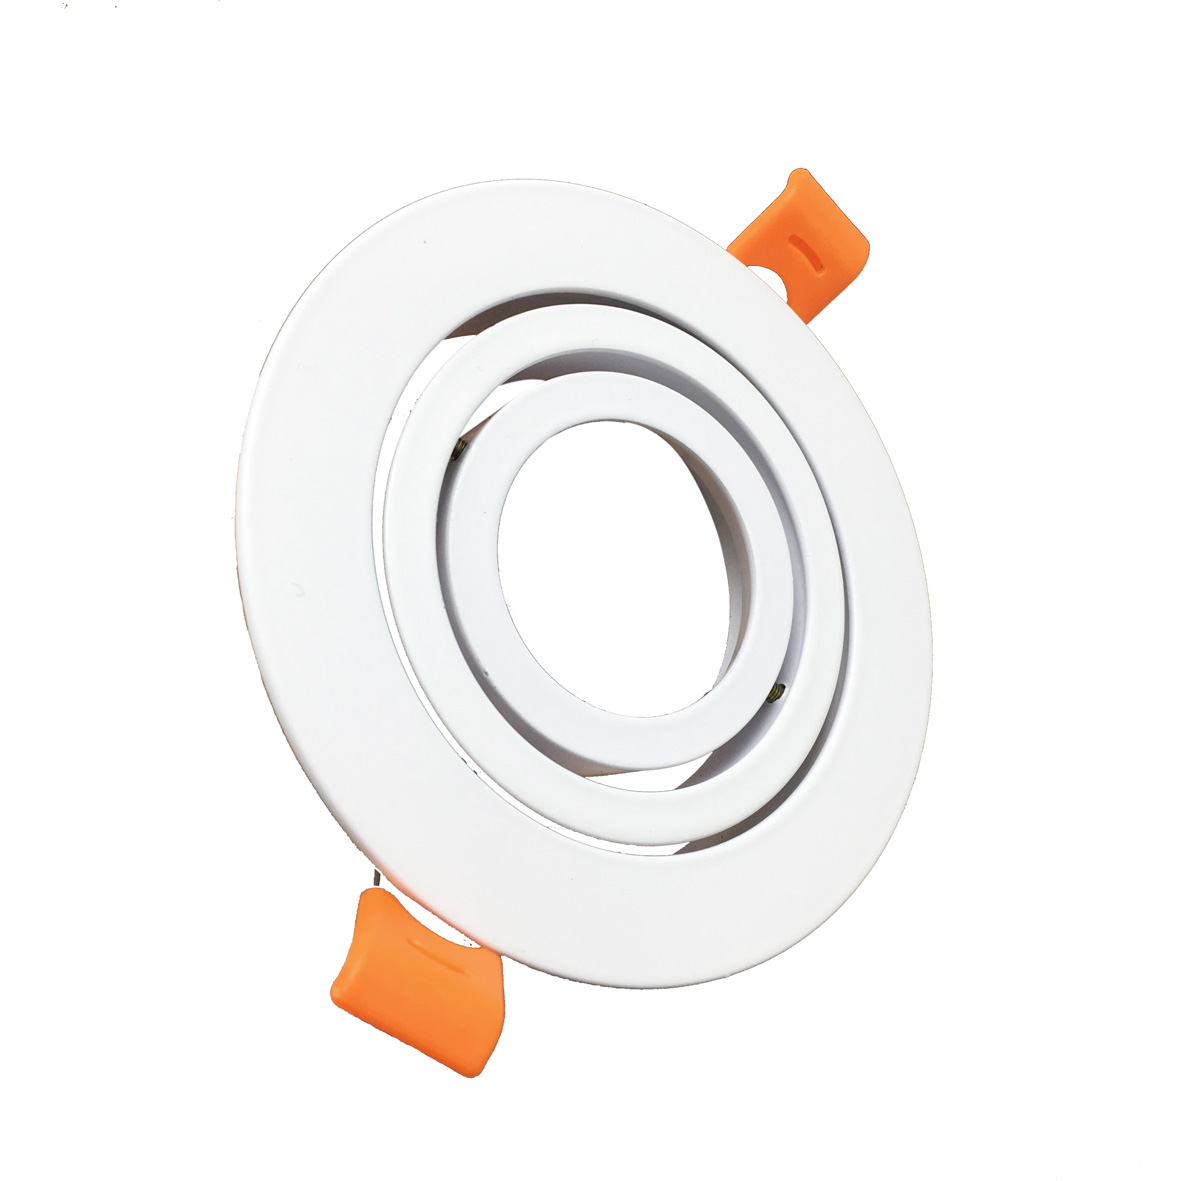 Portafaretto recessed Swivel LED spotlight GU10 Led ROUND escutcheon